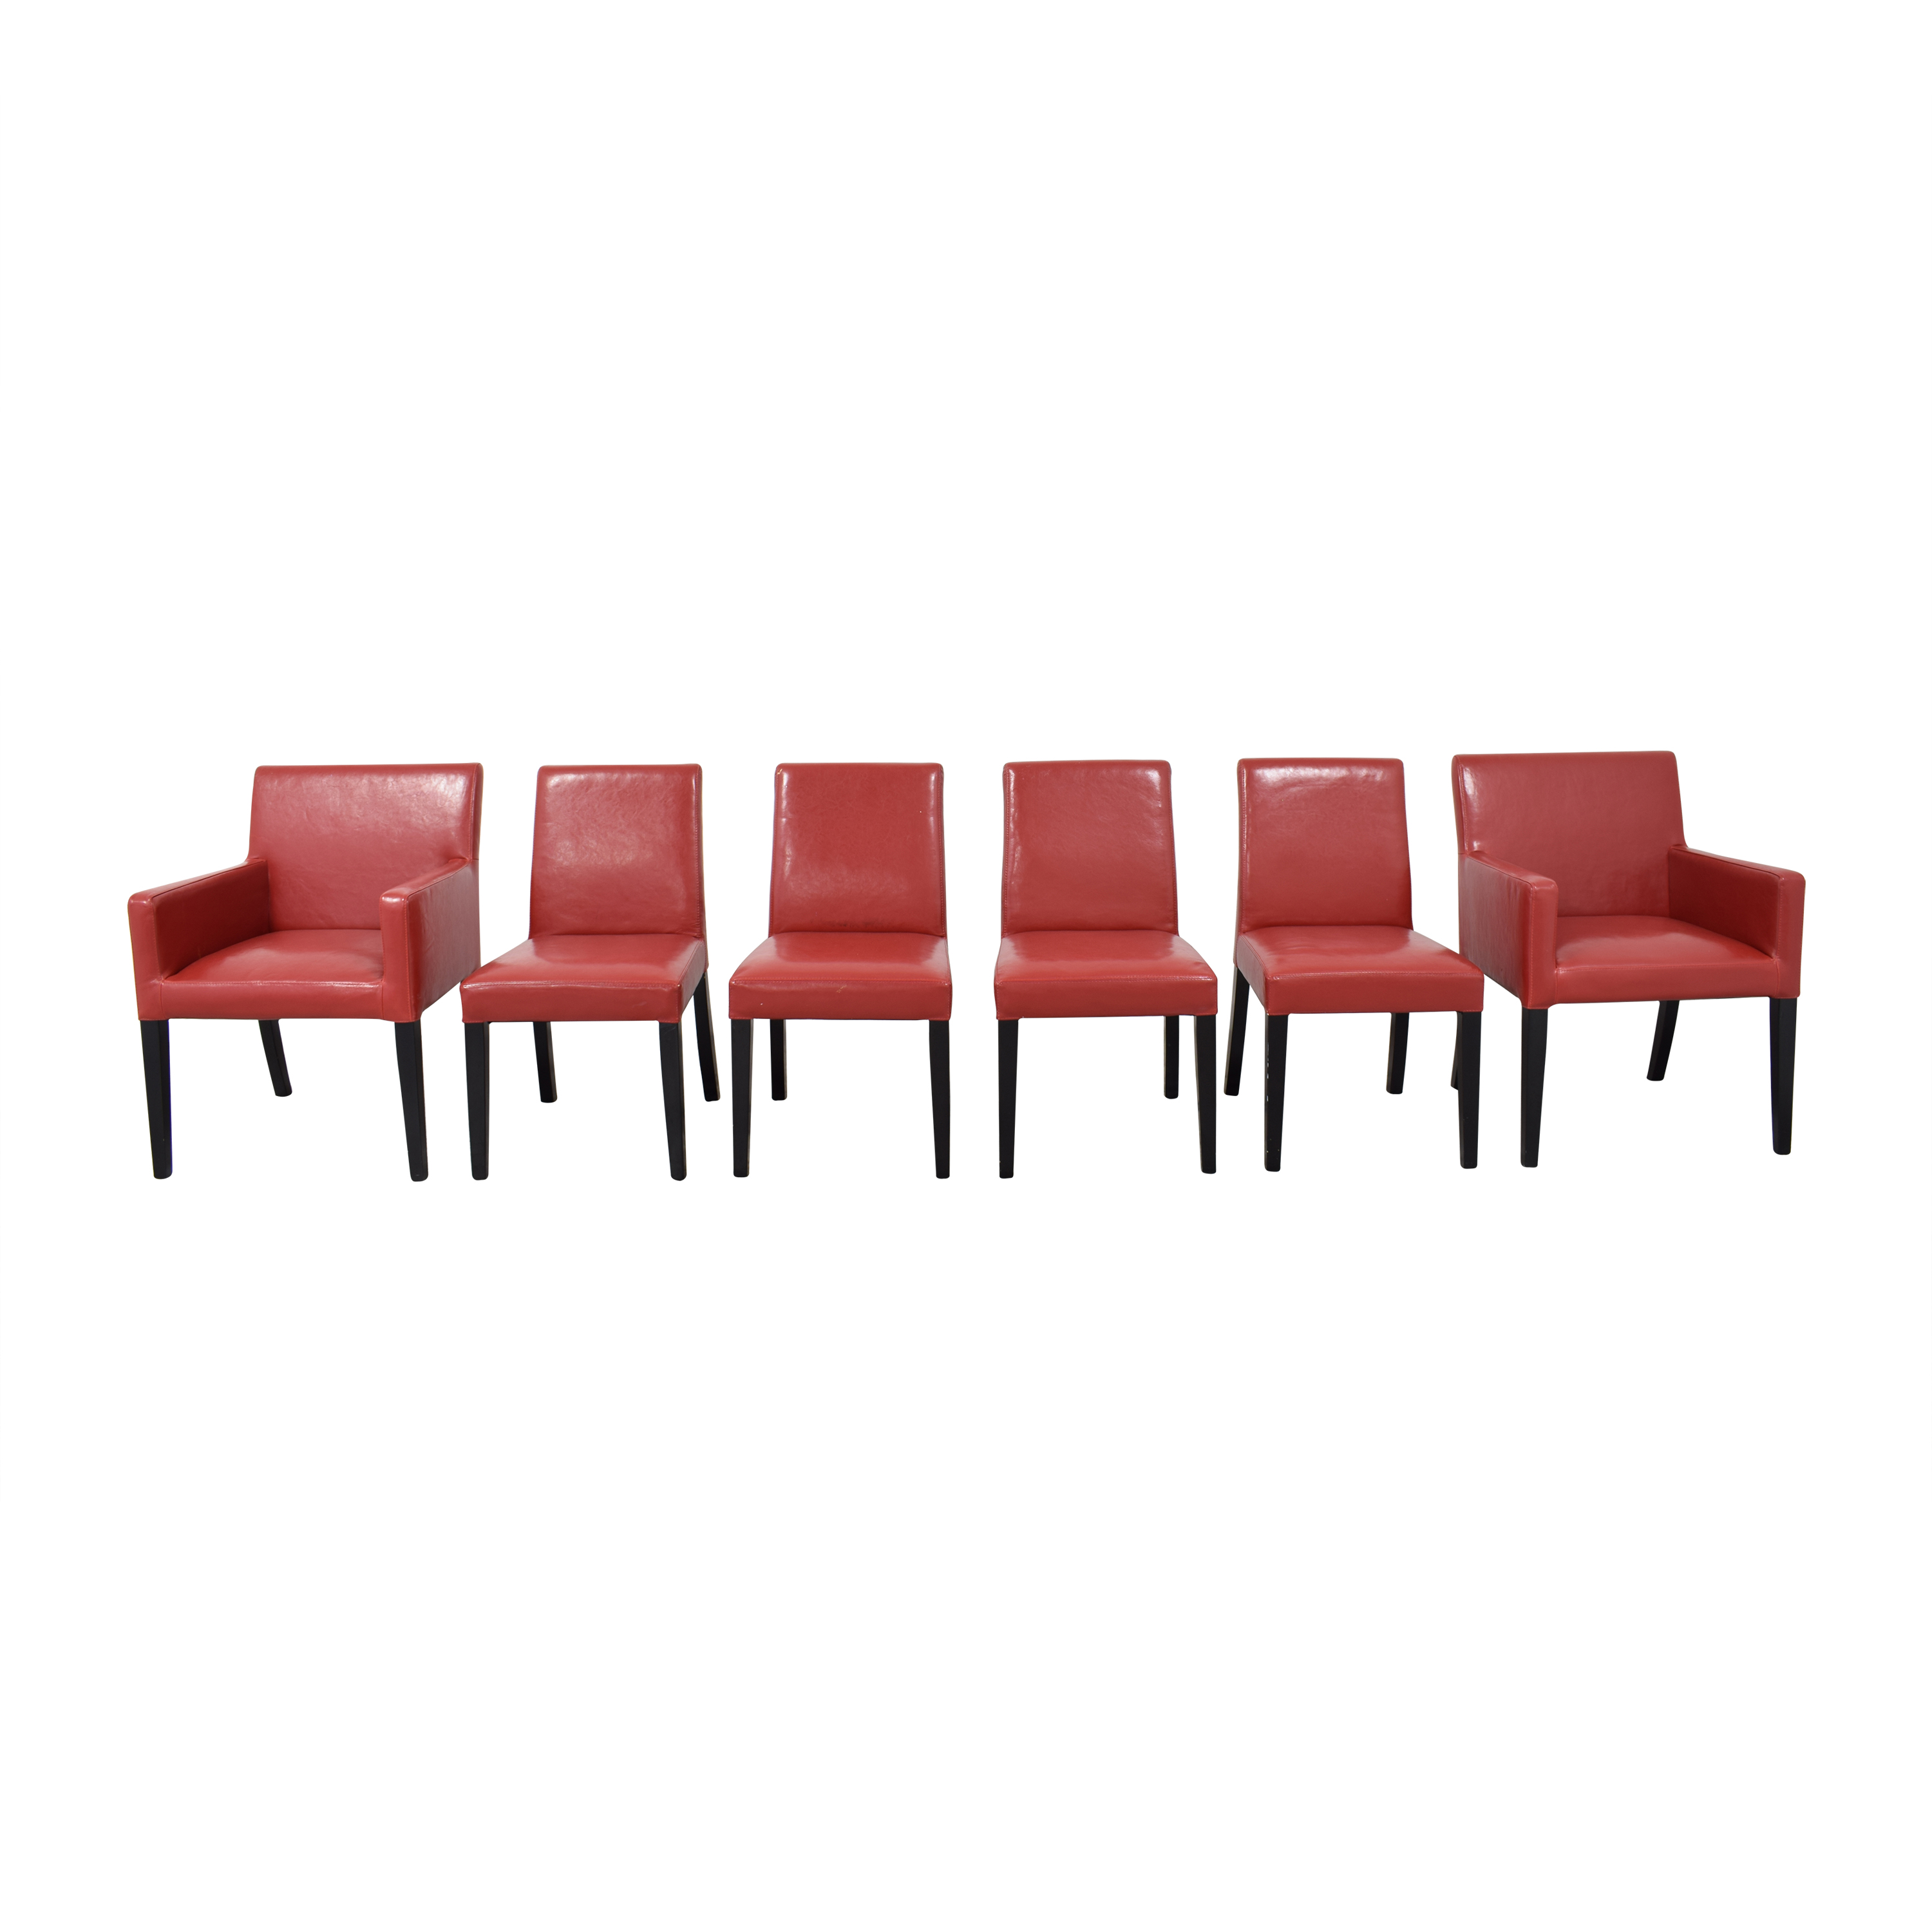 Crate & Barrel Crate & Barrel Pullman Dining Chairs discount